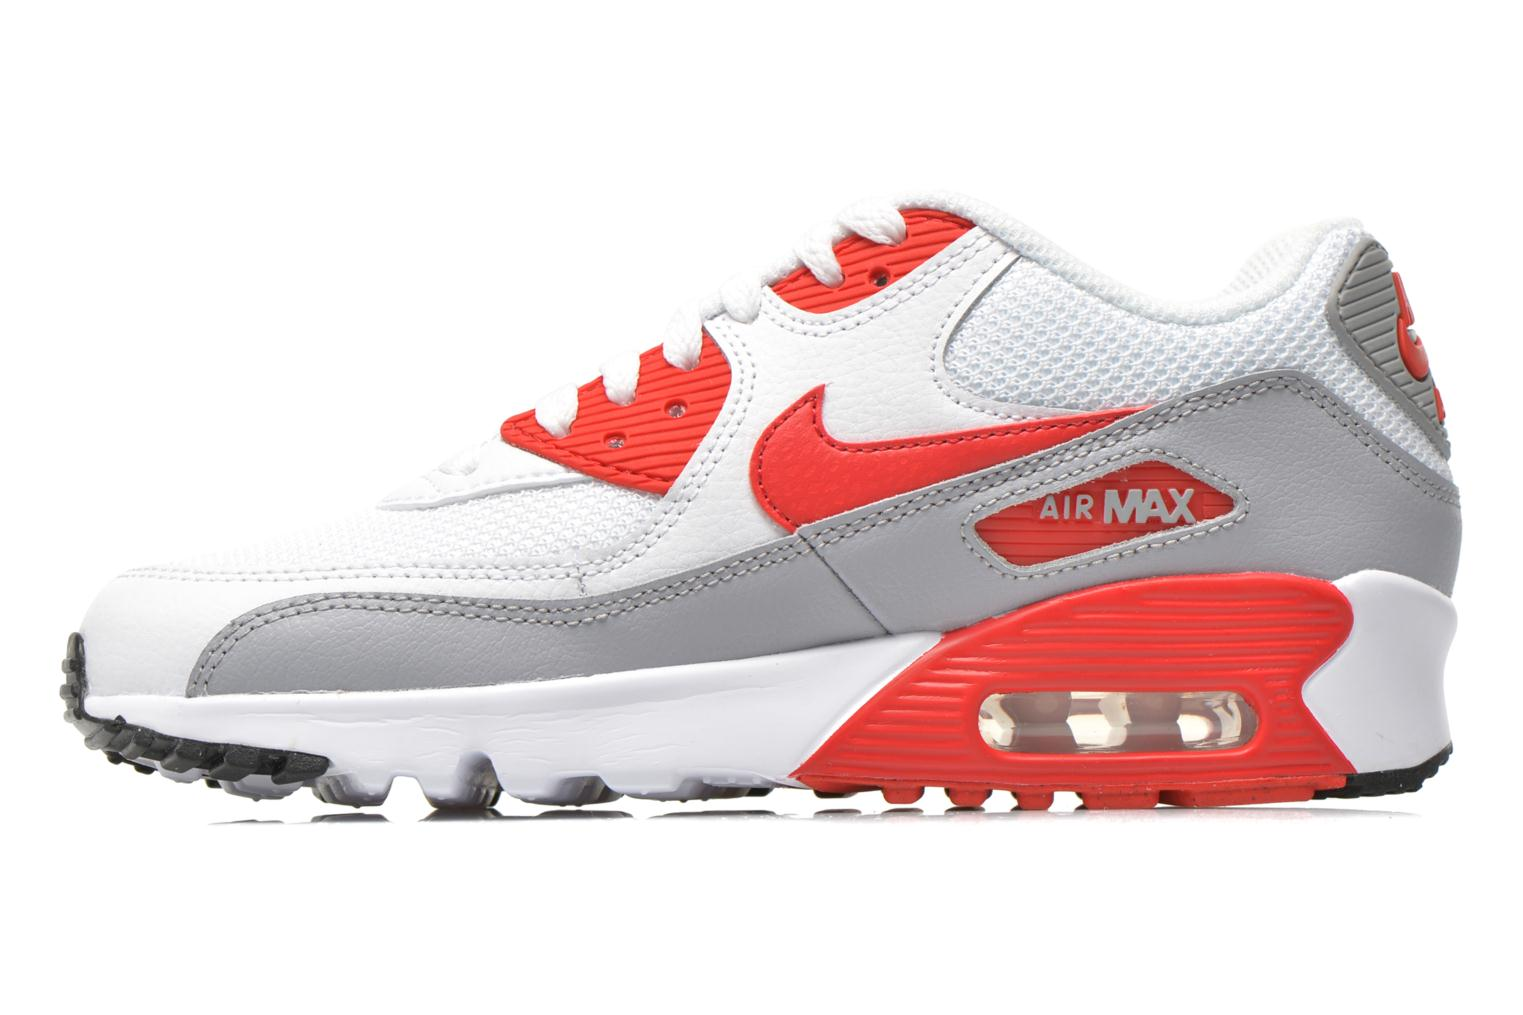 NIKE AIR MAX 90 MESH (GS) White Unvrsty Red-Wlf Gry-Blk